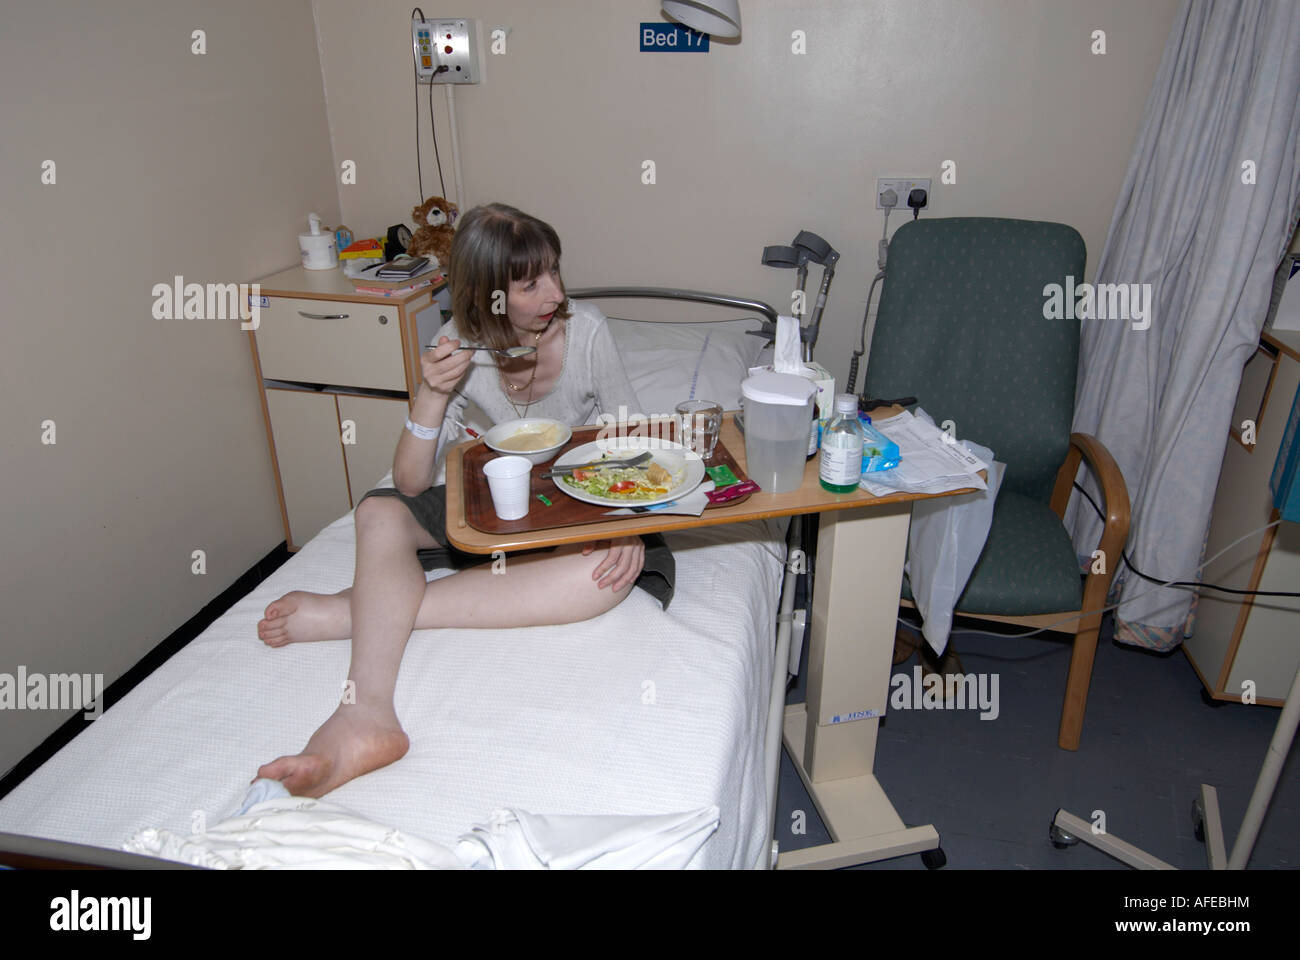 Female patient in cancer ward eating lunch upon arrival and